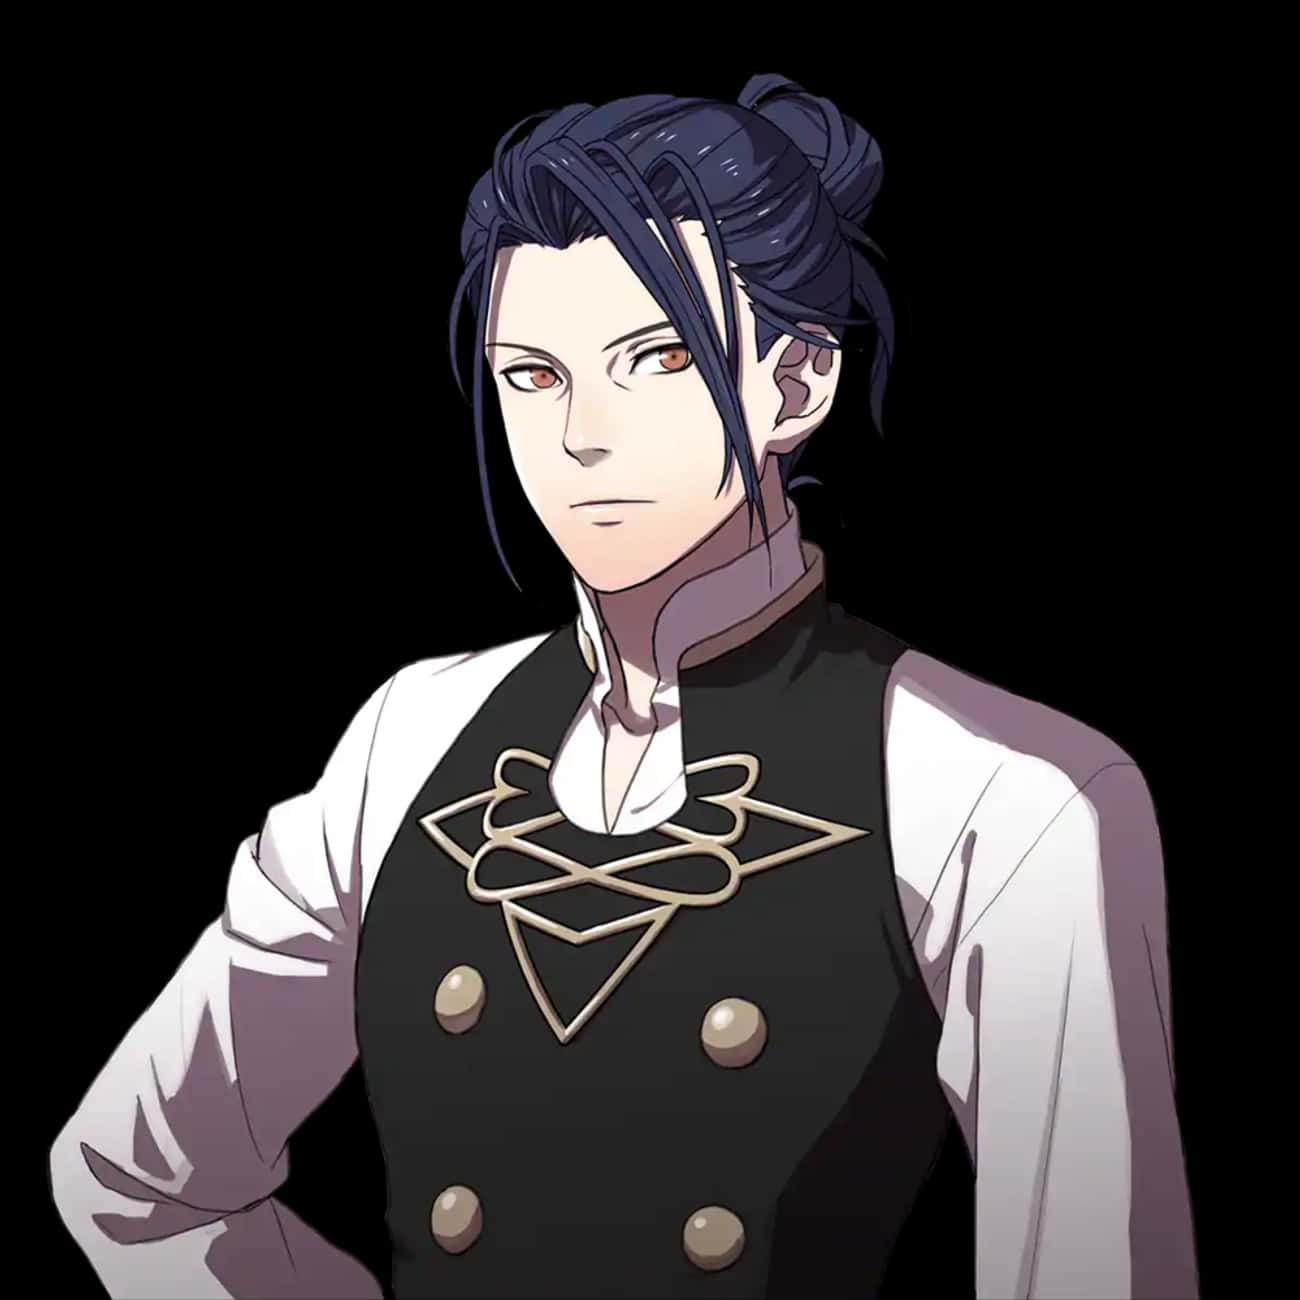 Felix  is listed (or ranked) 4 on the list The Best 'Fire Emblem: Three Houses' Characters